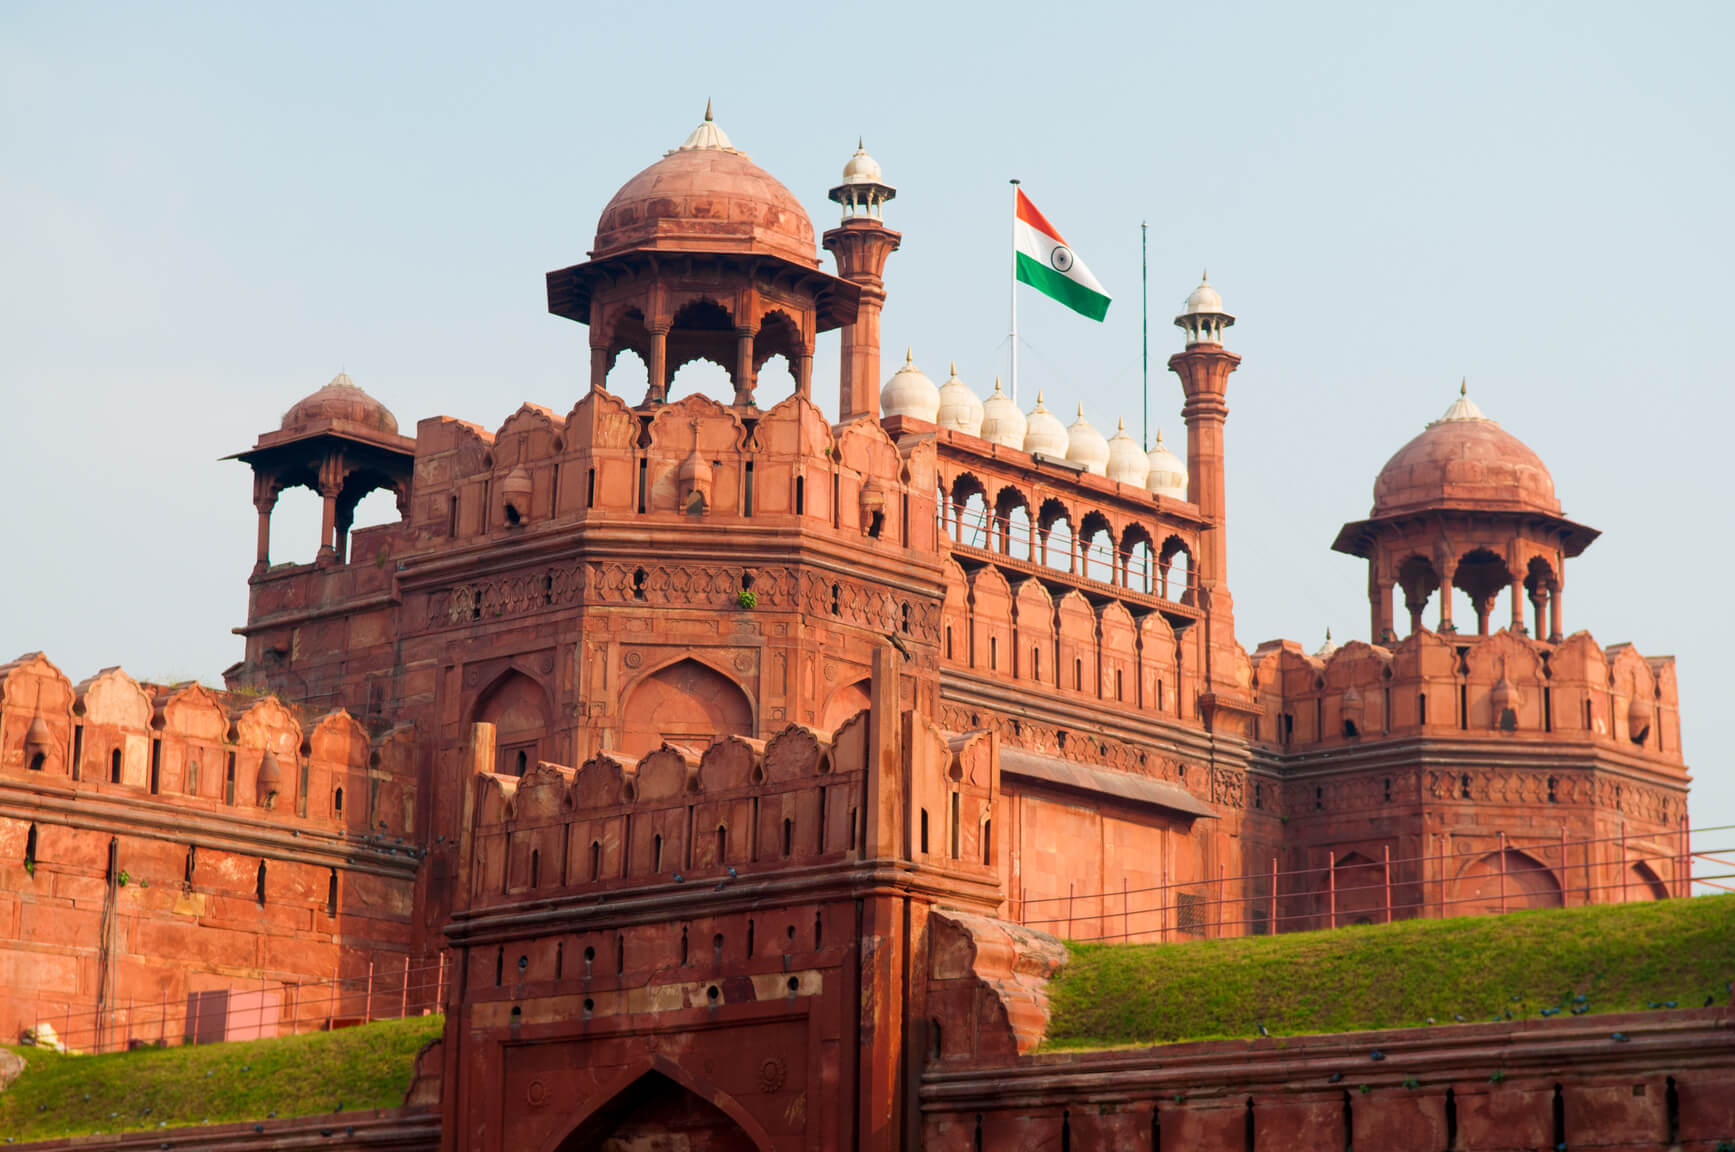 Atlanta to Delhi, India for only $655 roundtrip (May dates)